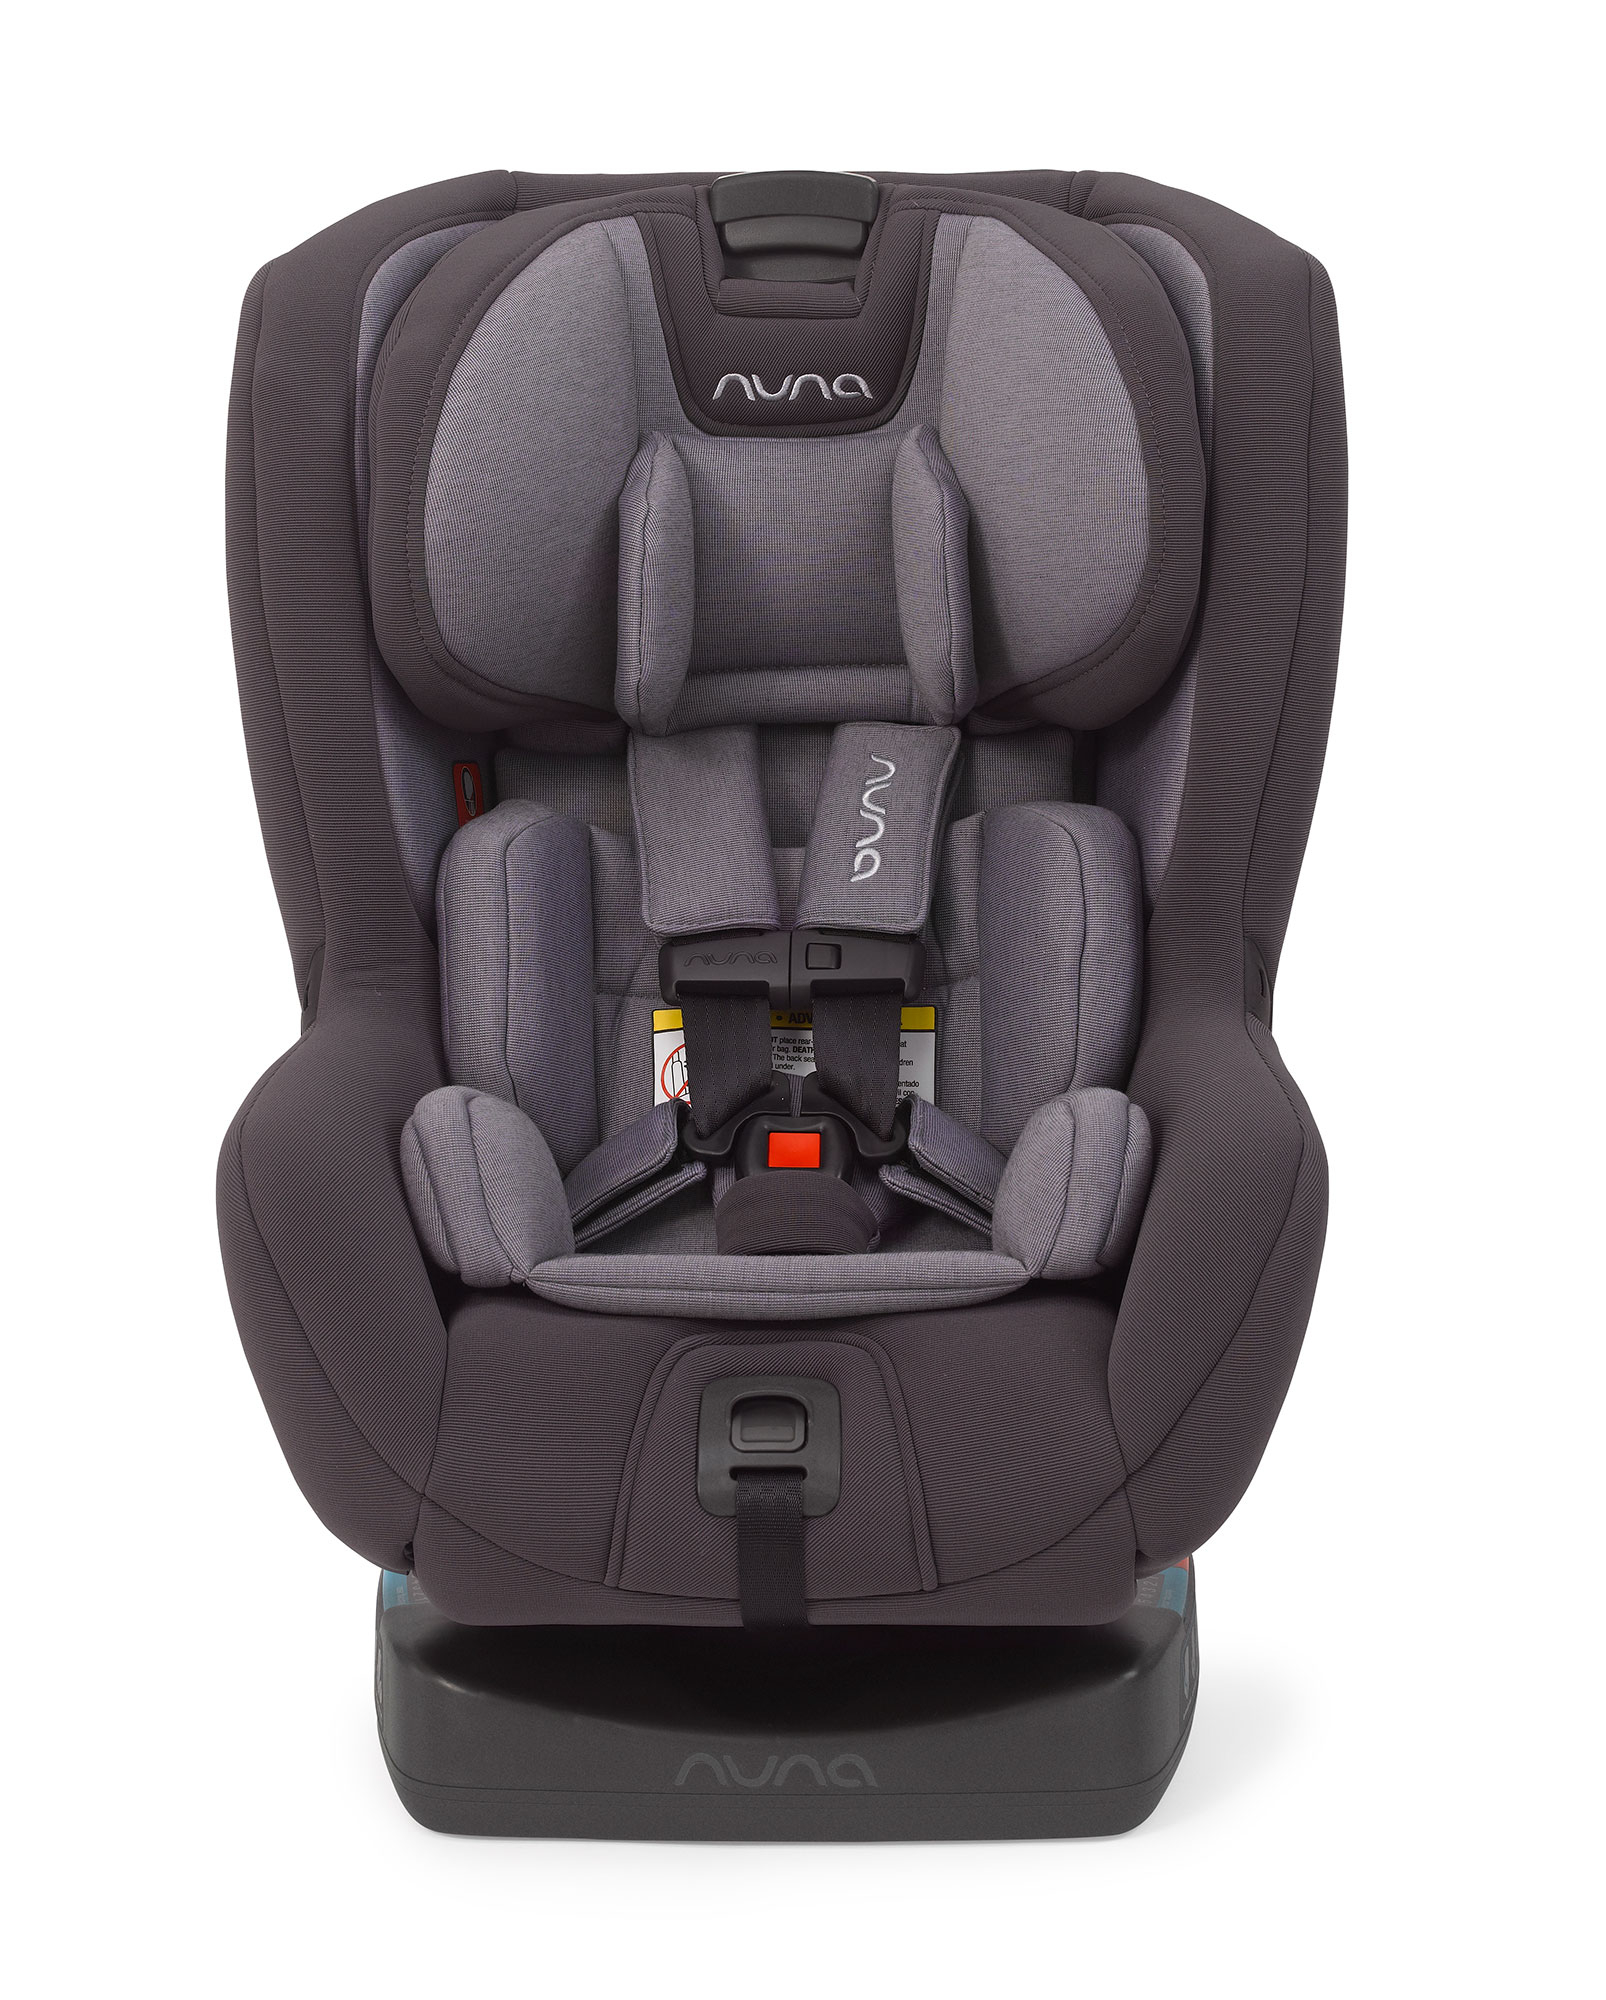 This Toddler Car Seat Is A Game Changer